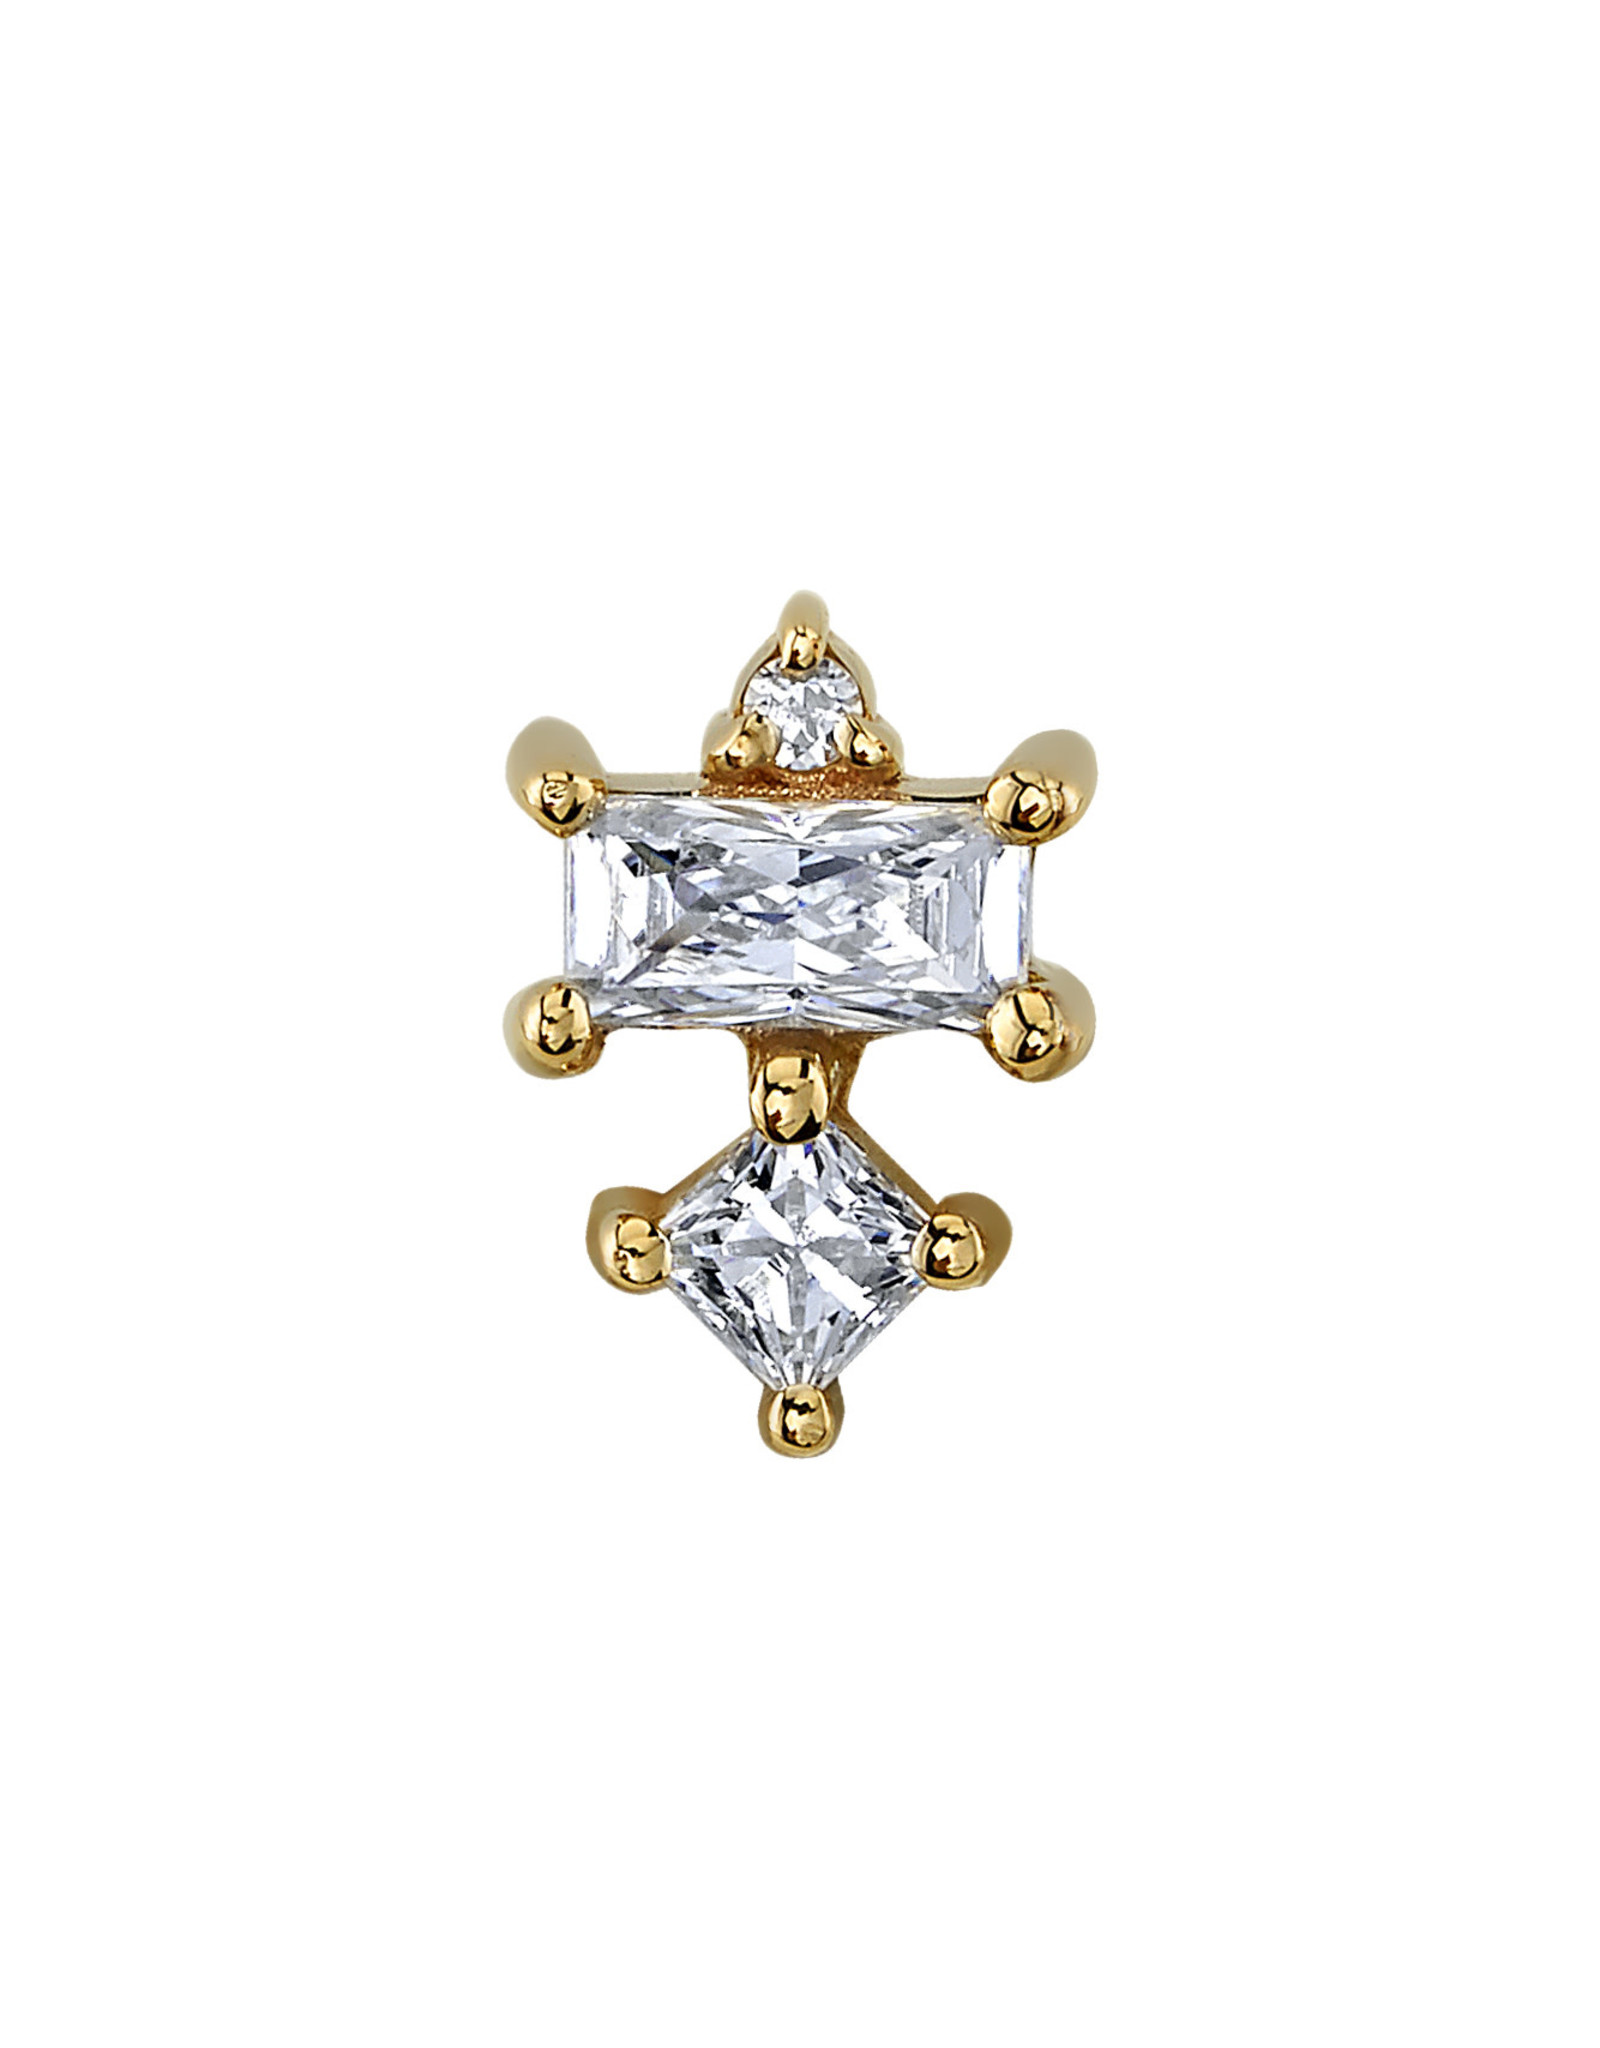 "BVLA BVLA Yellow Gold ""Tetra"" threaded end with 1.0 CZ, 4x2 CZ baguette, and 2.0 princess CZ"